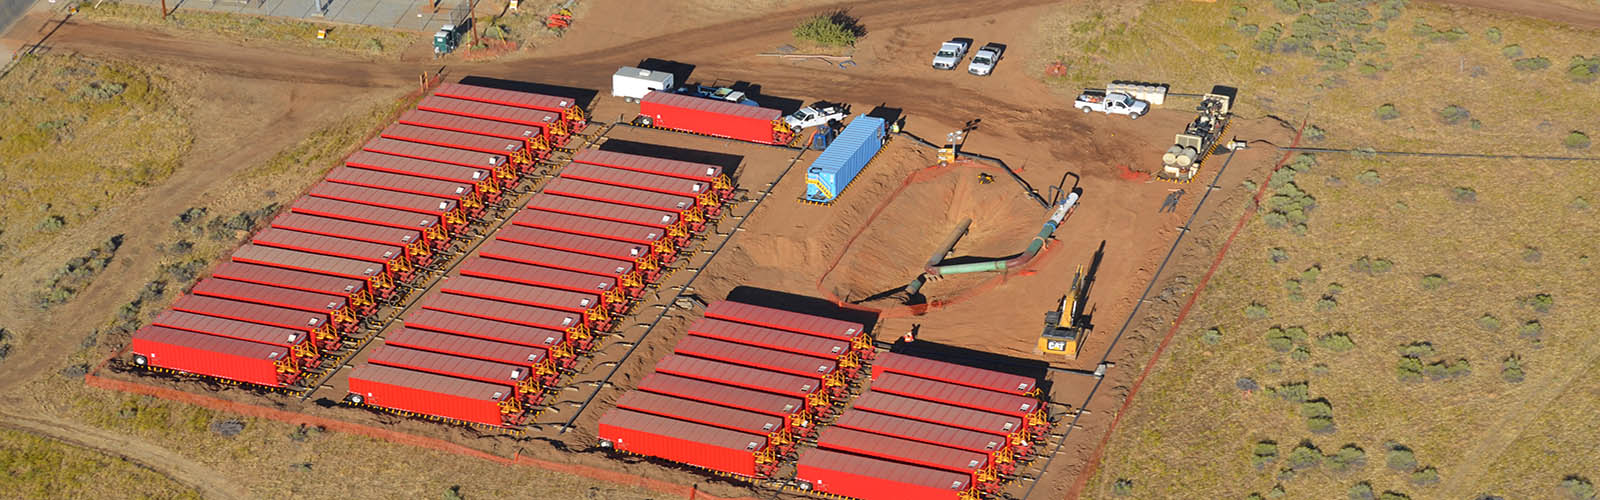 A large amount of trailers holding water and a pipeline being hydrostatic tested